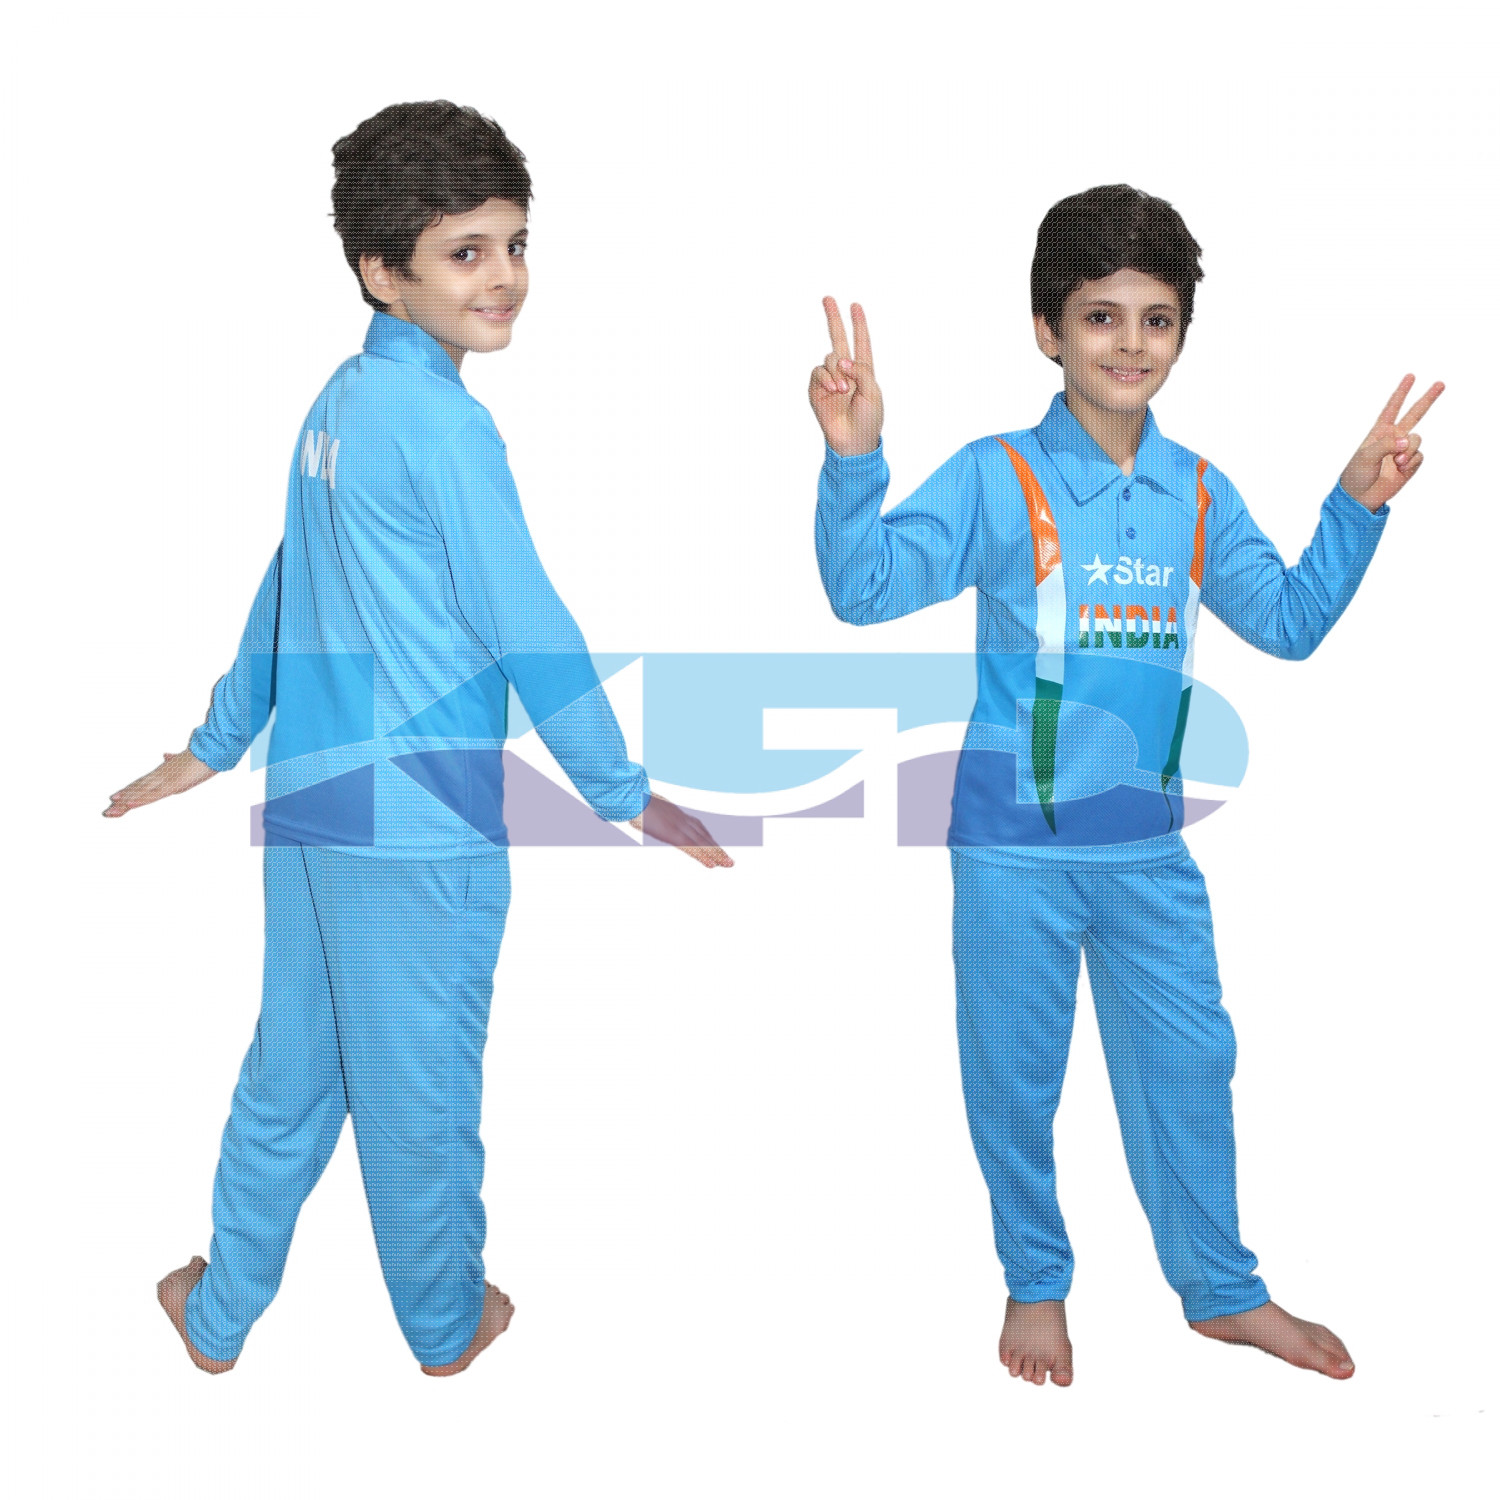 India Cricket Team fancy dress for kids,National Hero Costume for Independence Day/Republic Day/Annual function/Theme Party/Competition/Stage Shows Dress